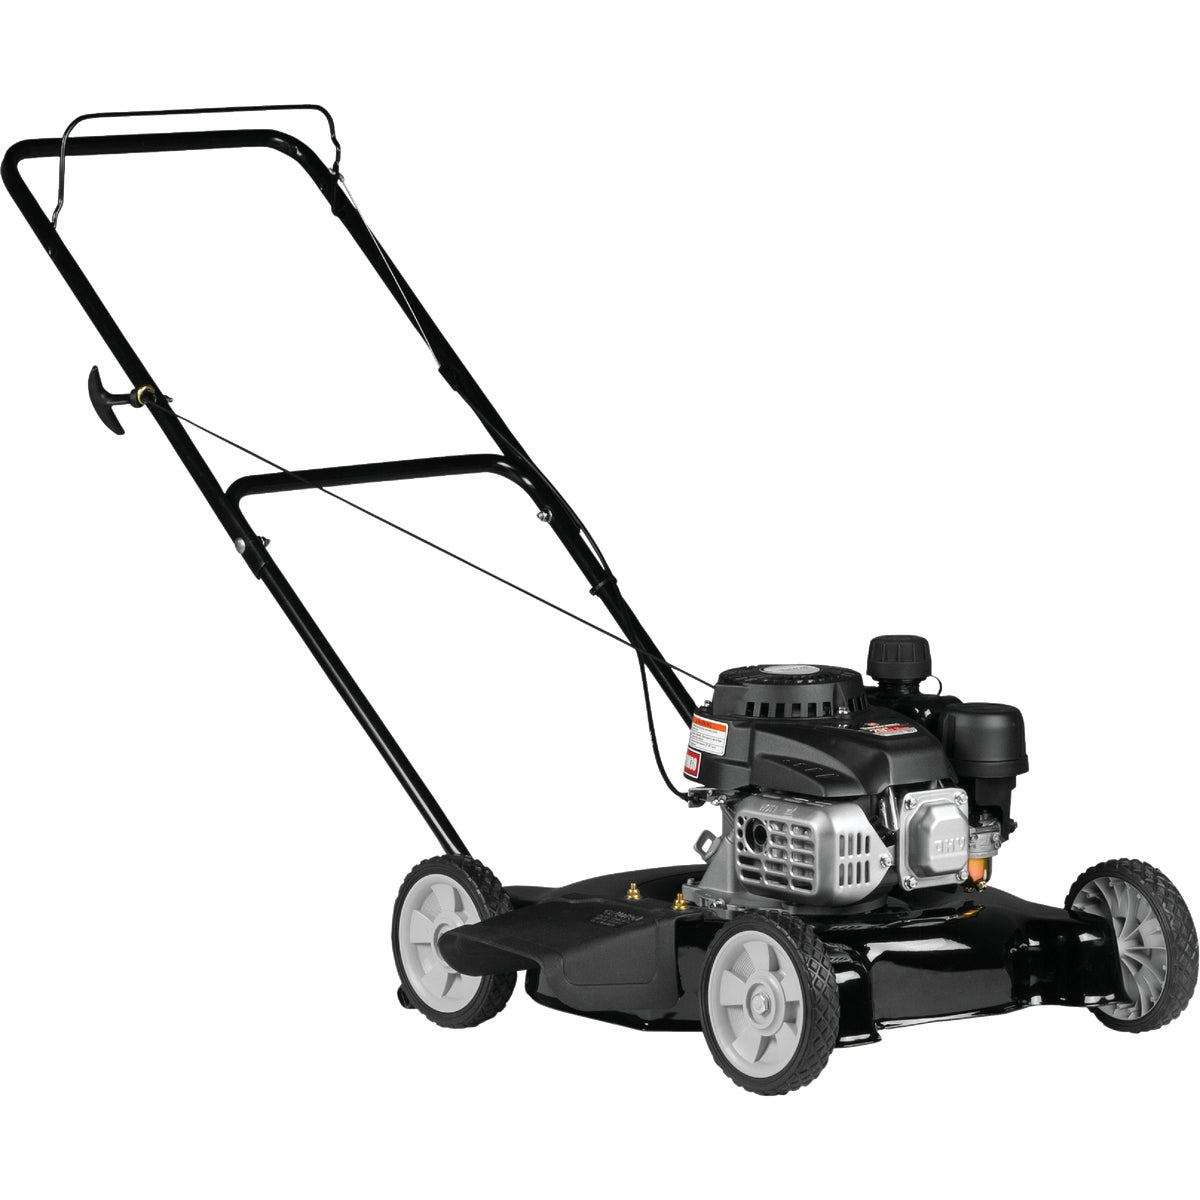 "20"" SIDE DISCHARGE MOWER"